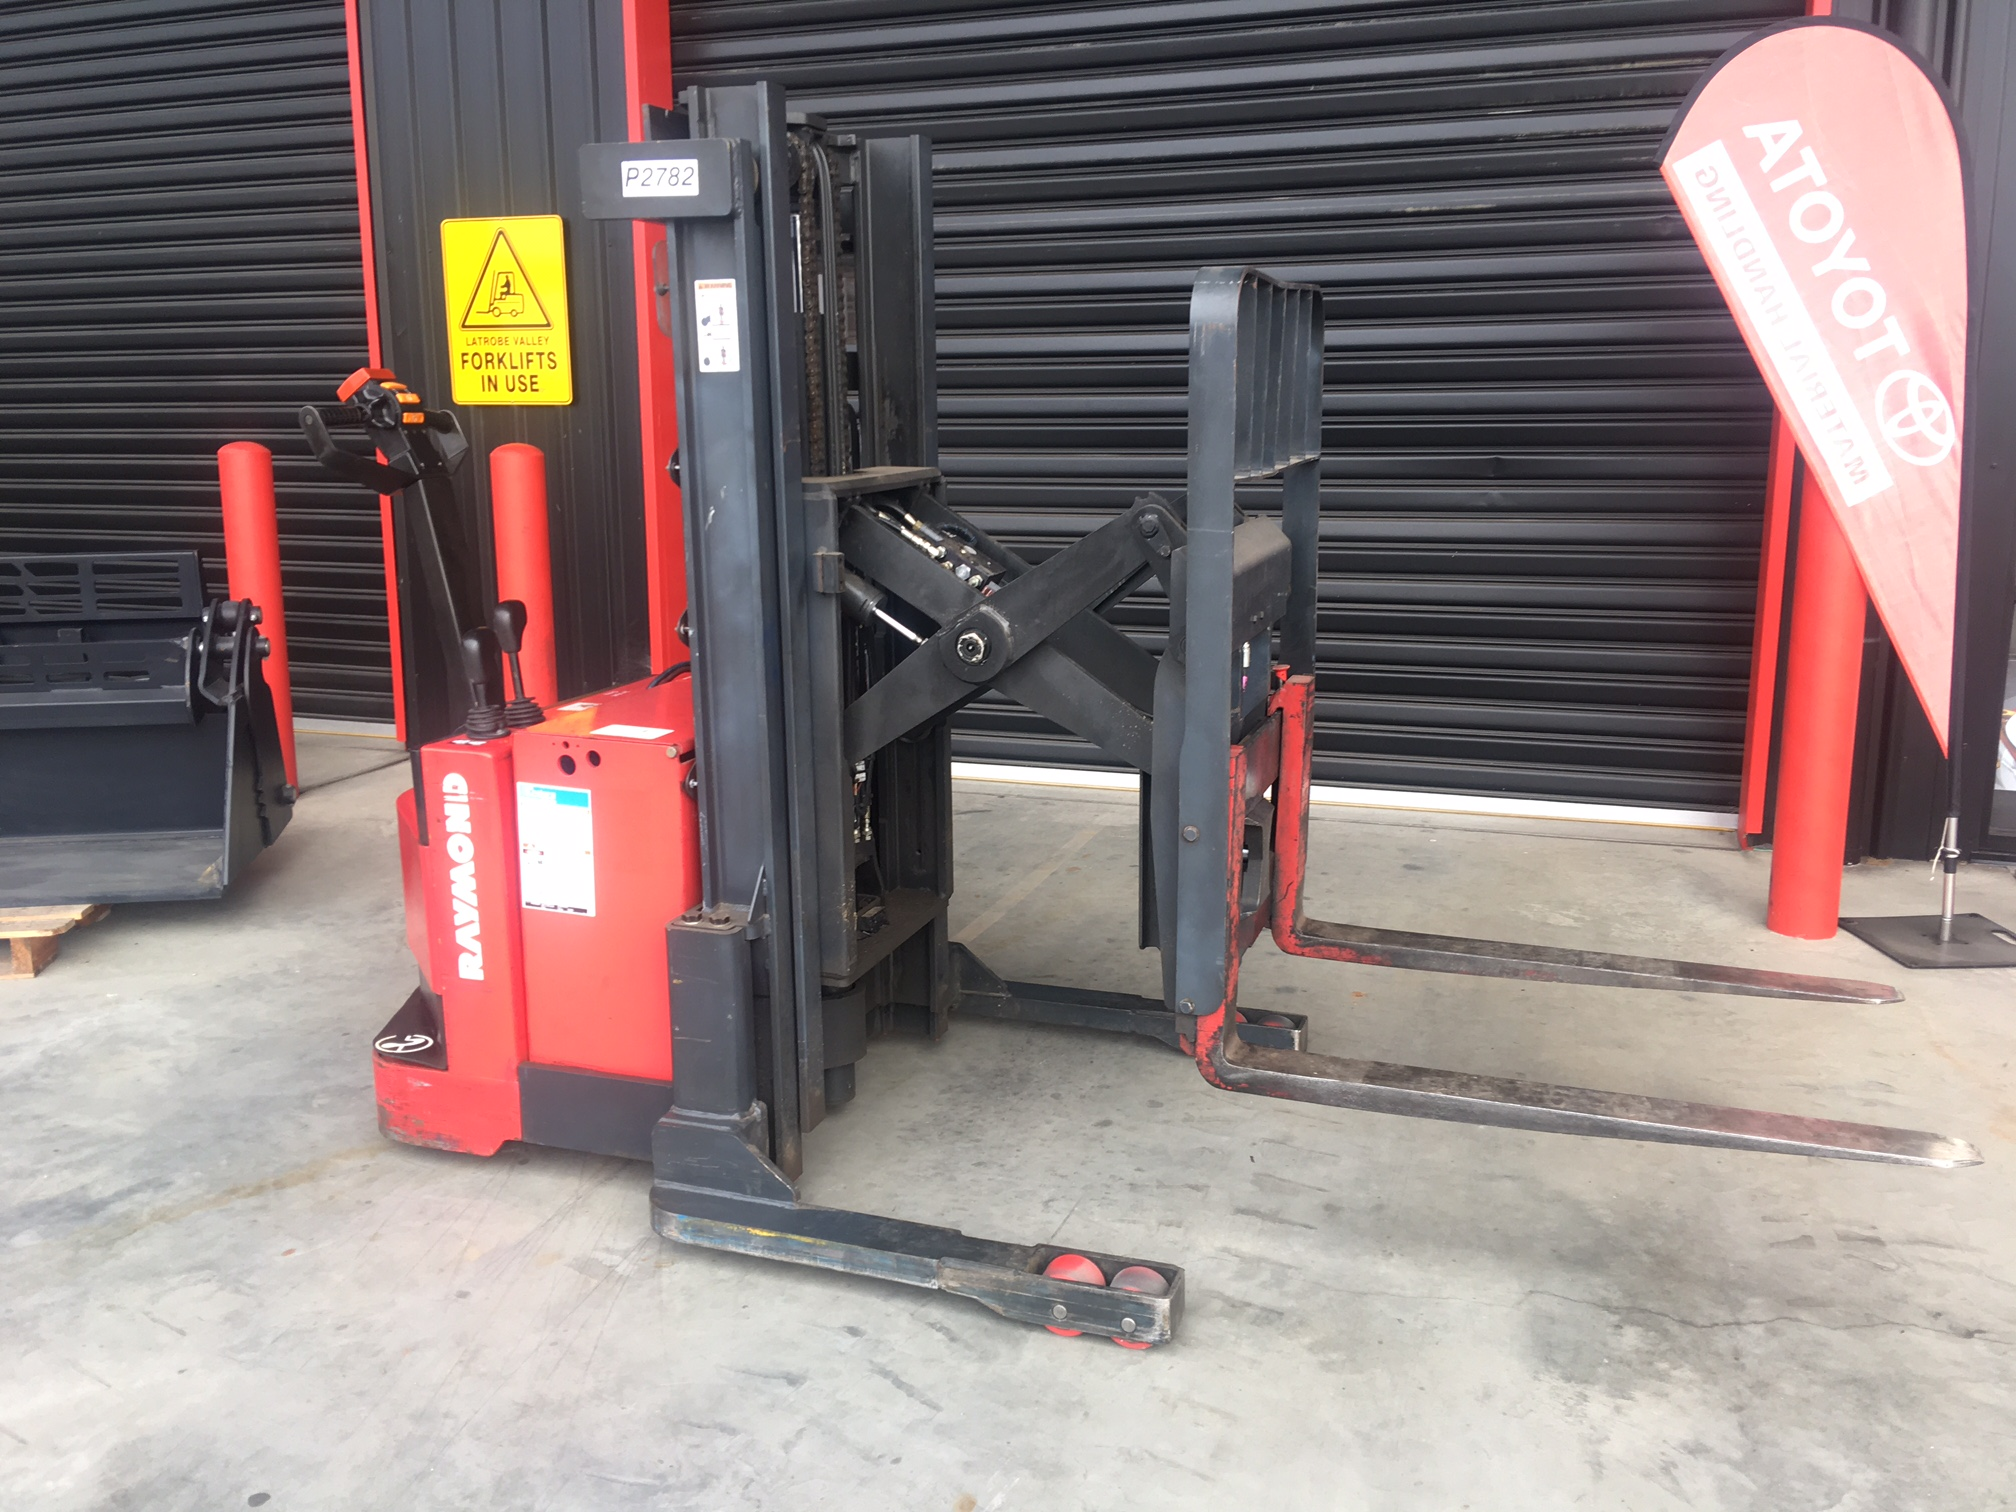 Raymond Rrs30 1 3t Electric Reach Walk Behind Forklift